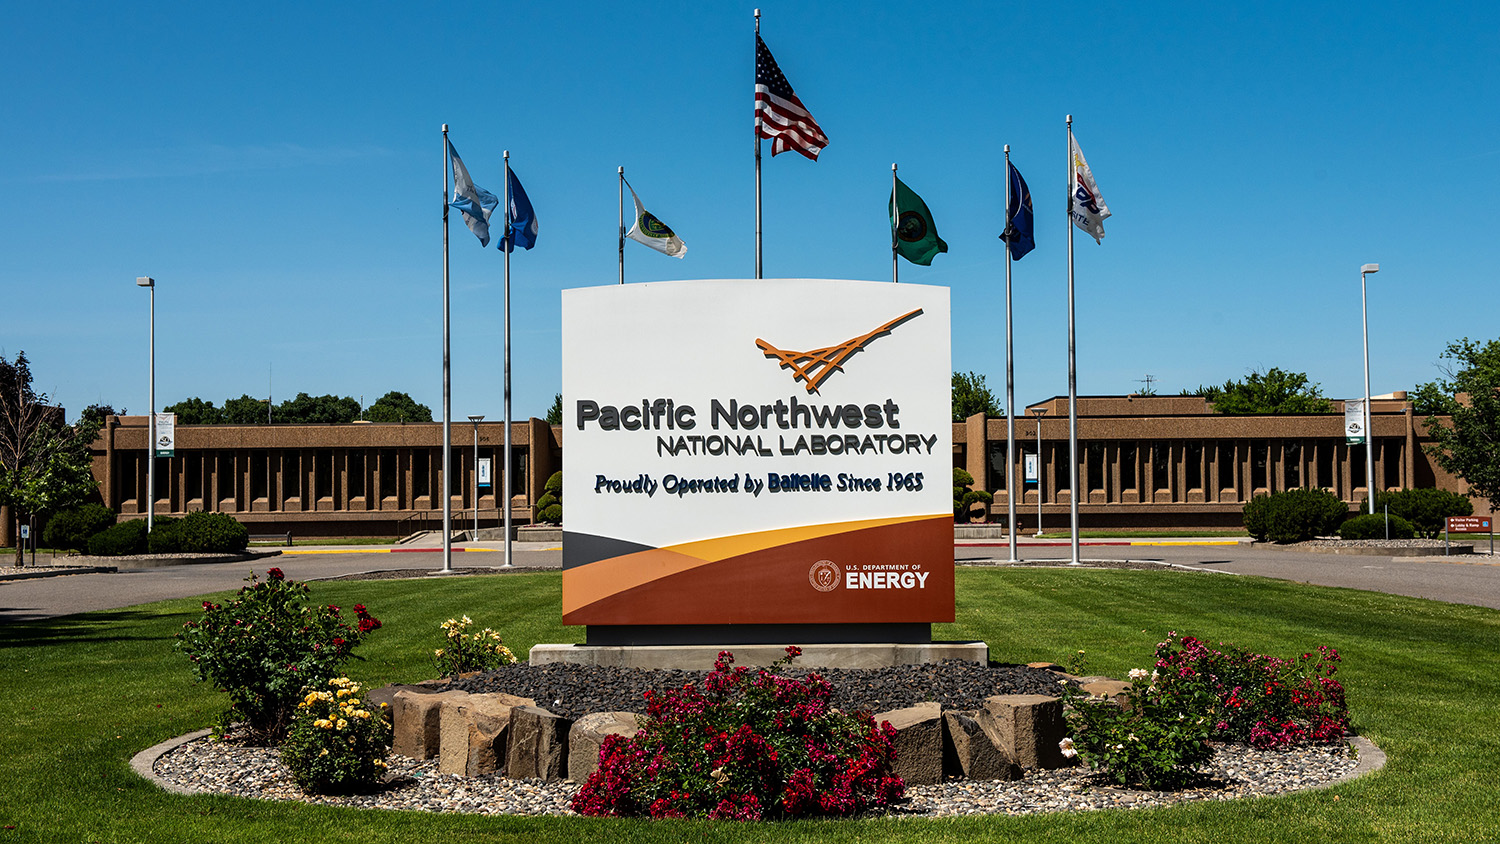 A sign at the entrance to the Pacific Northwest National Laboratory.